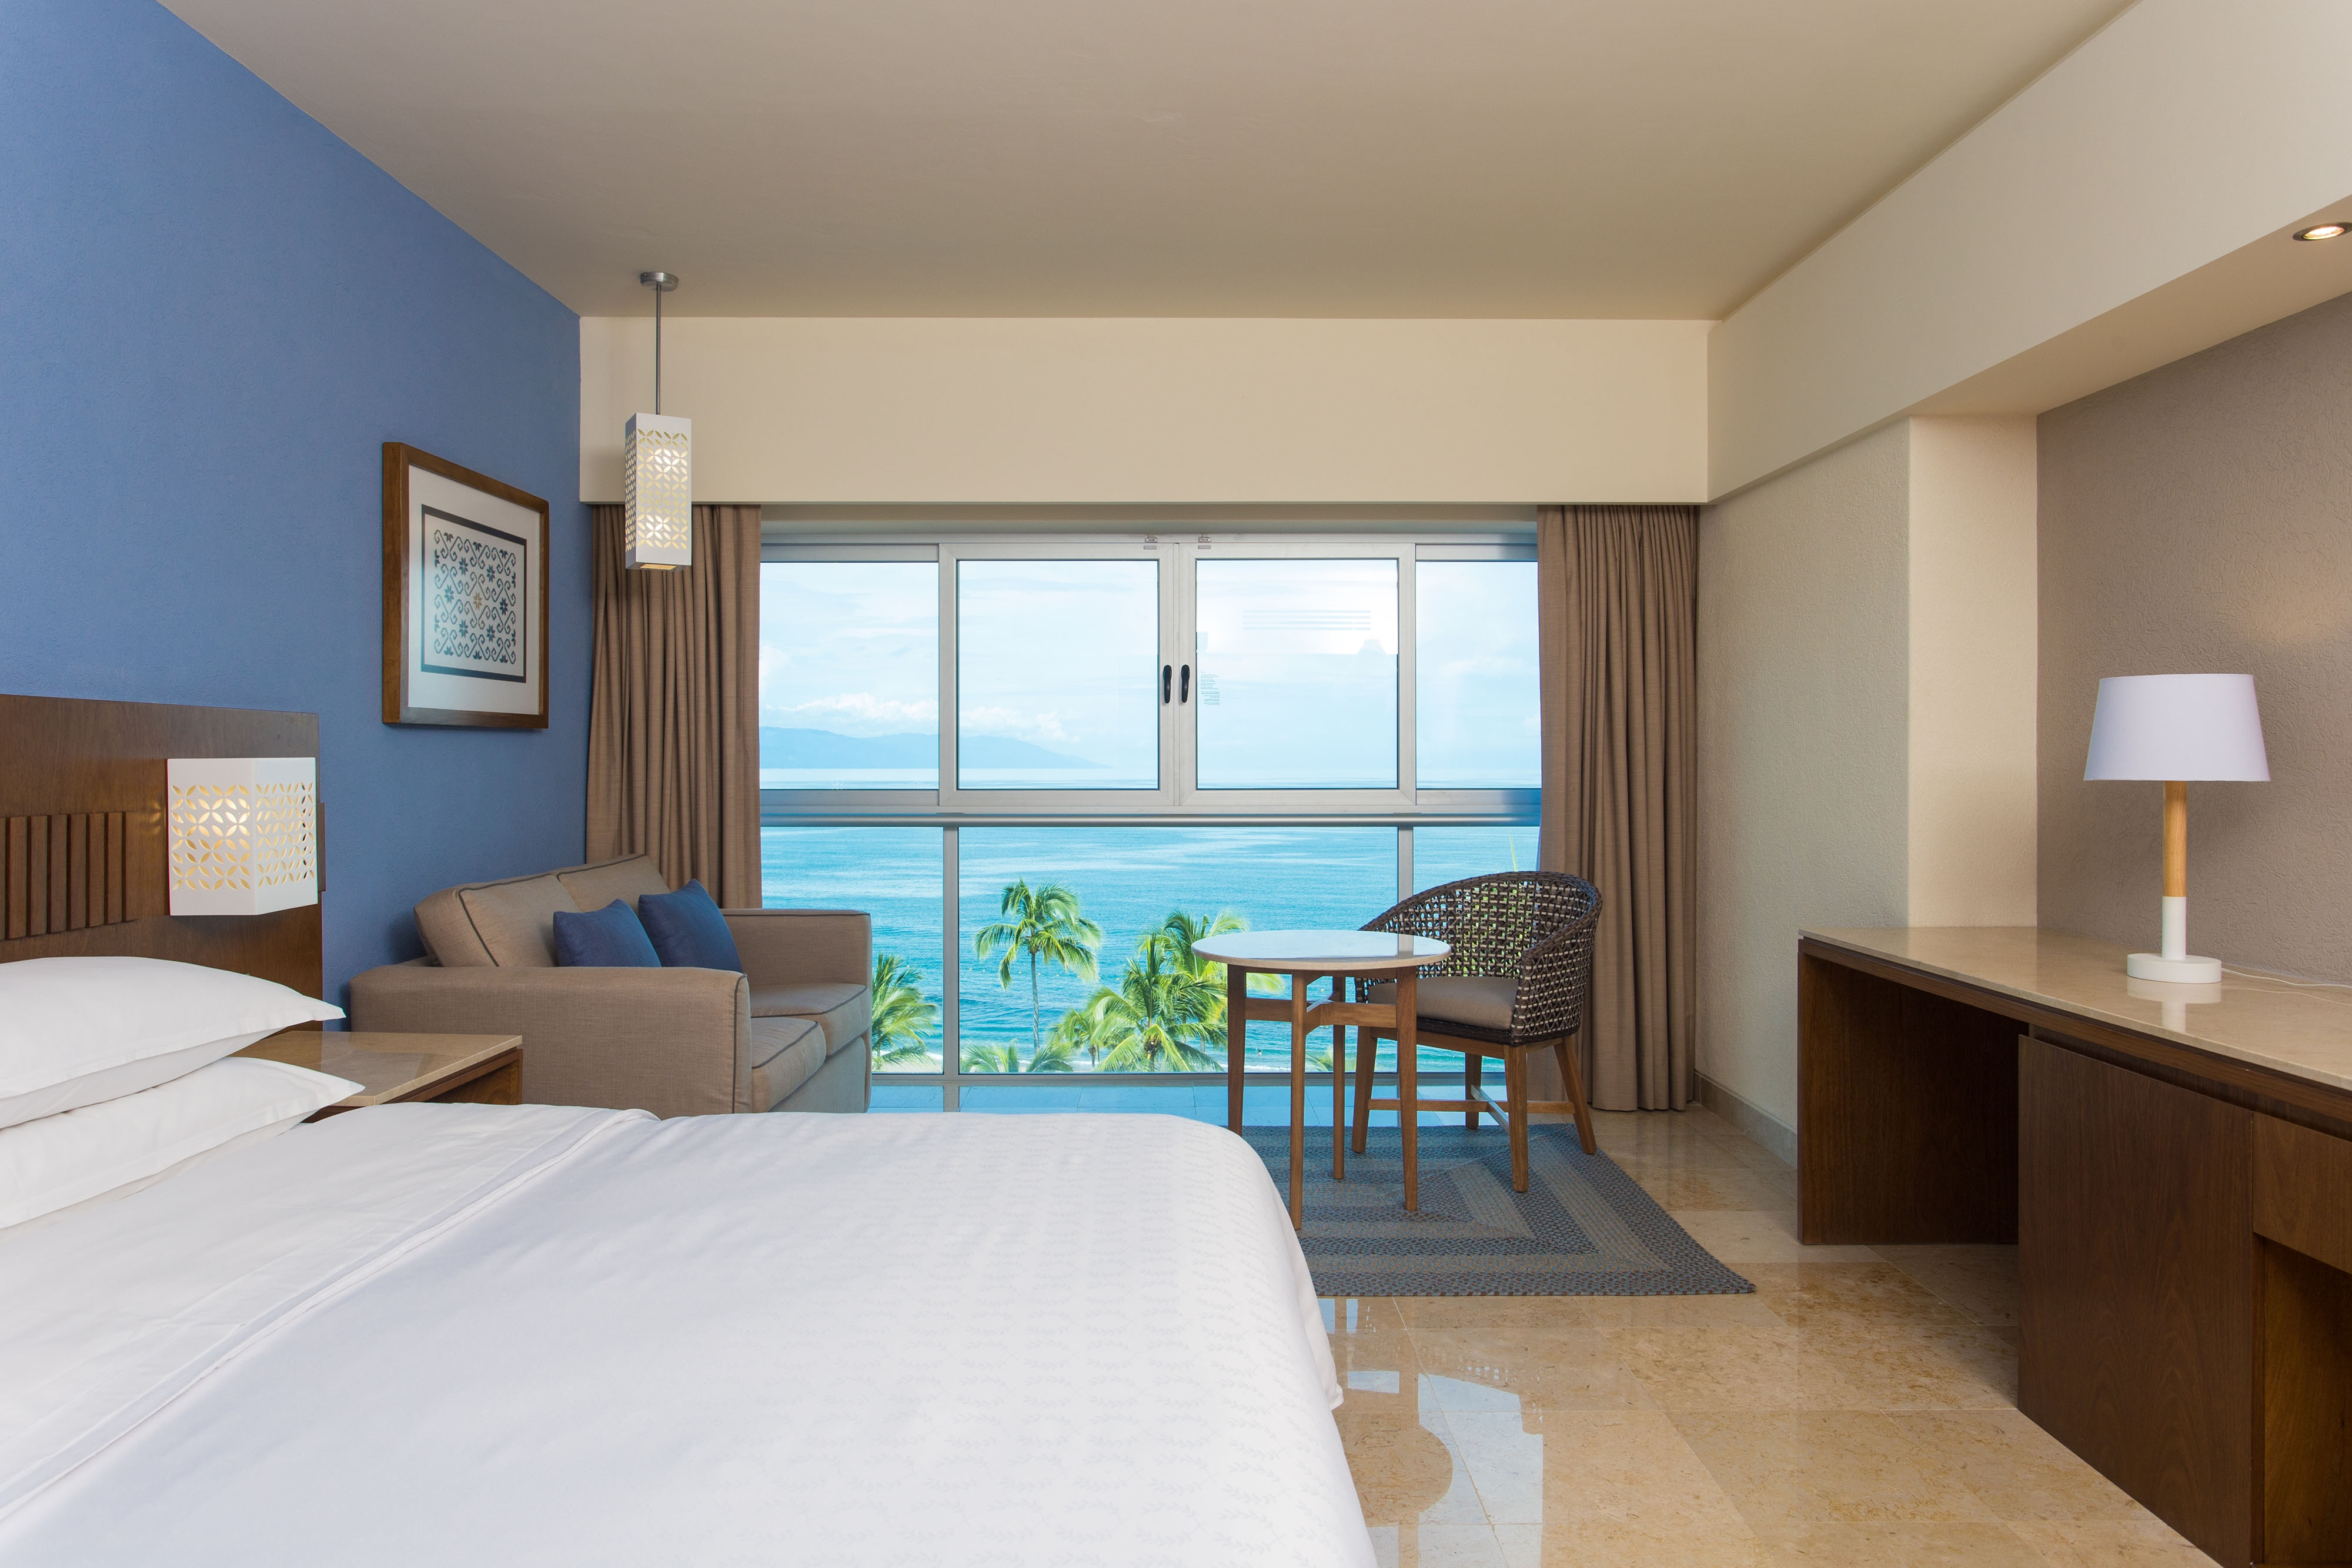 King Deluxe Guest Room - Bay View